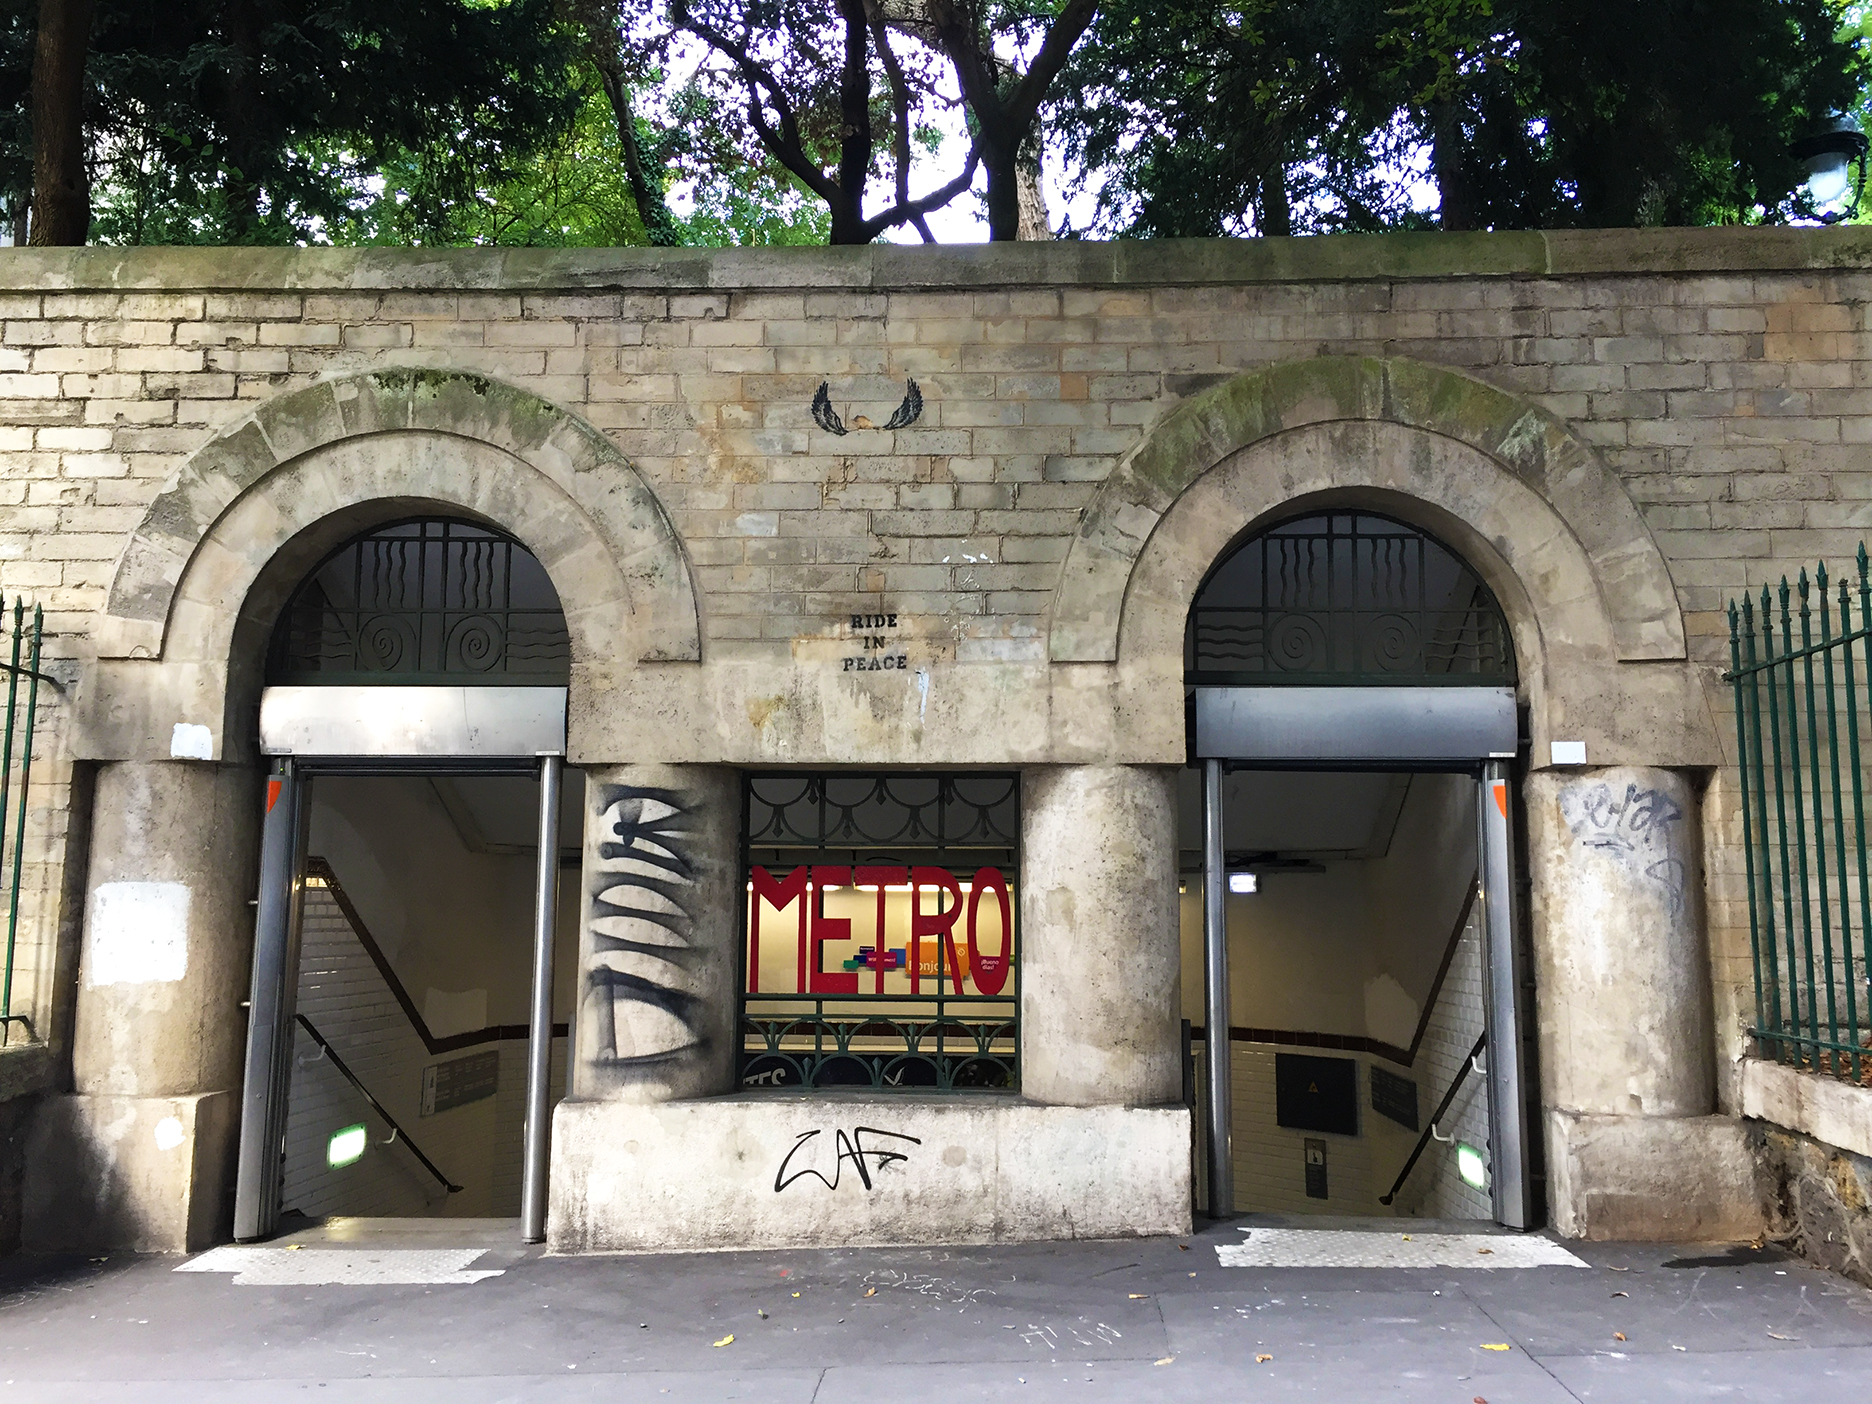 The original entrance to station Monge is the 5th arrondissement is located next to the arênes de Lutèce, one of the few remnants of the city in Gallo-Roman times.